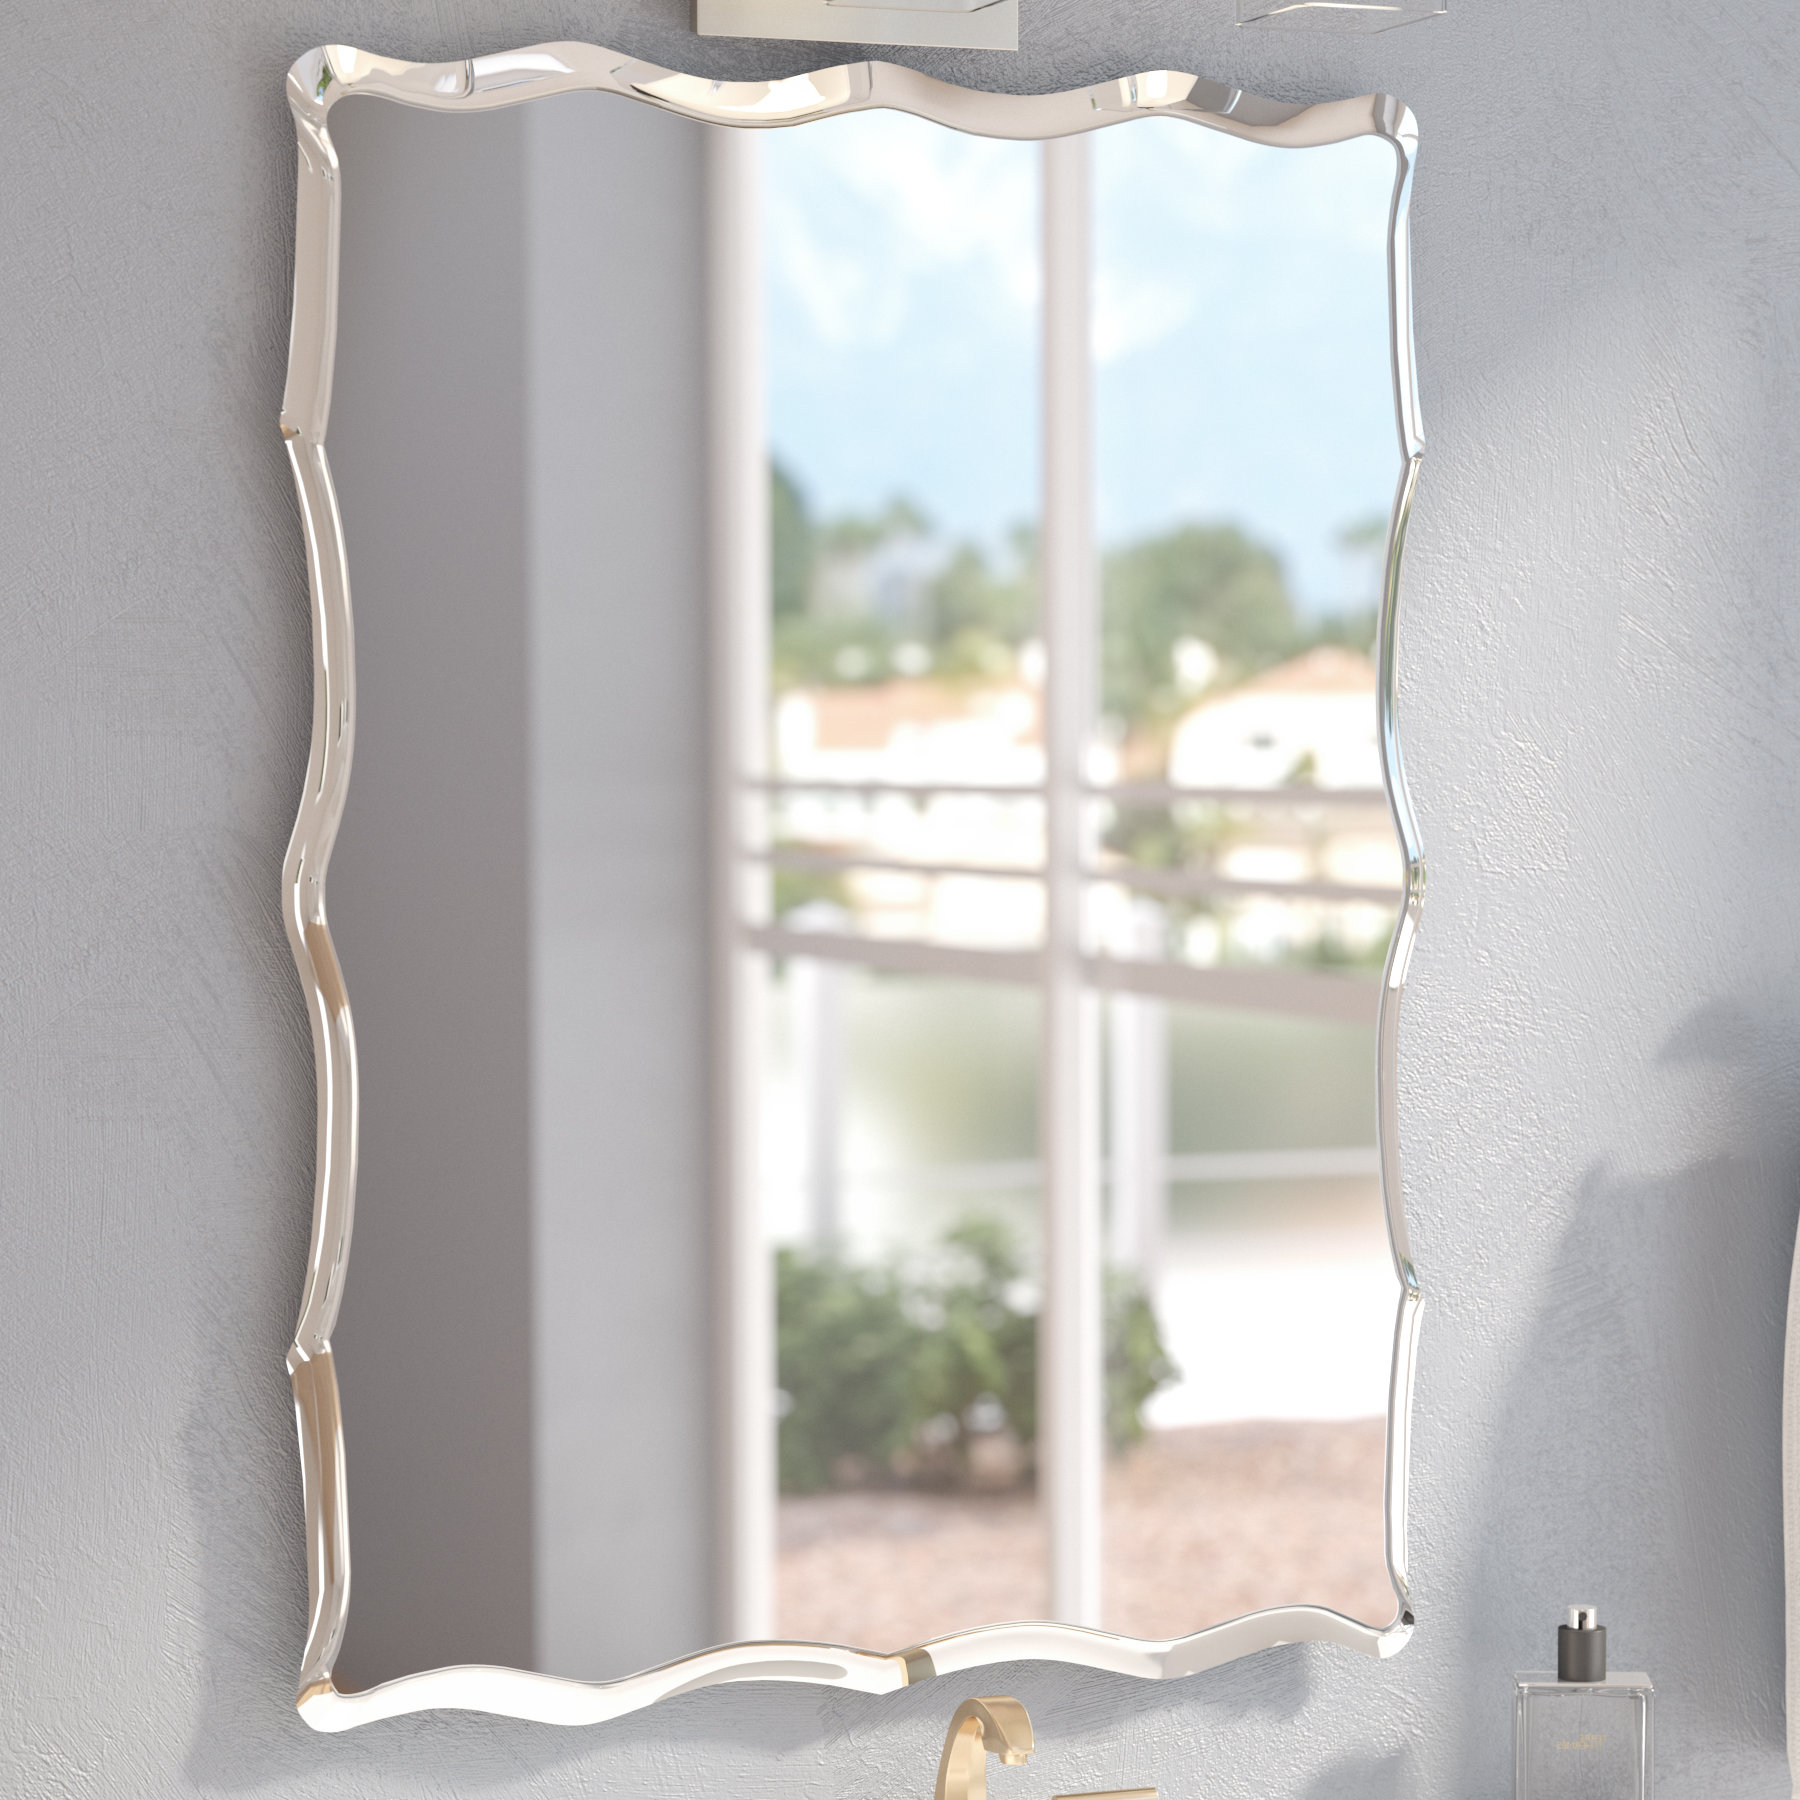 Estefania Frameless Wall Mirror With Latest Frameless Wall Mirrors (View 3 of 20)